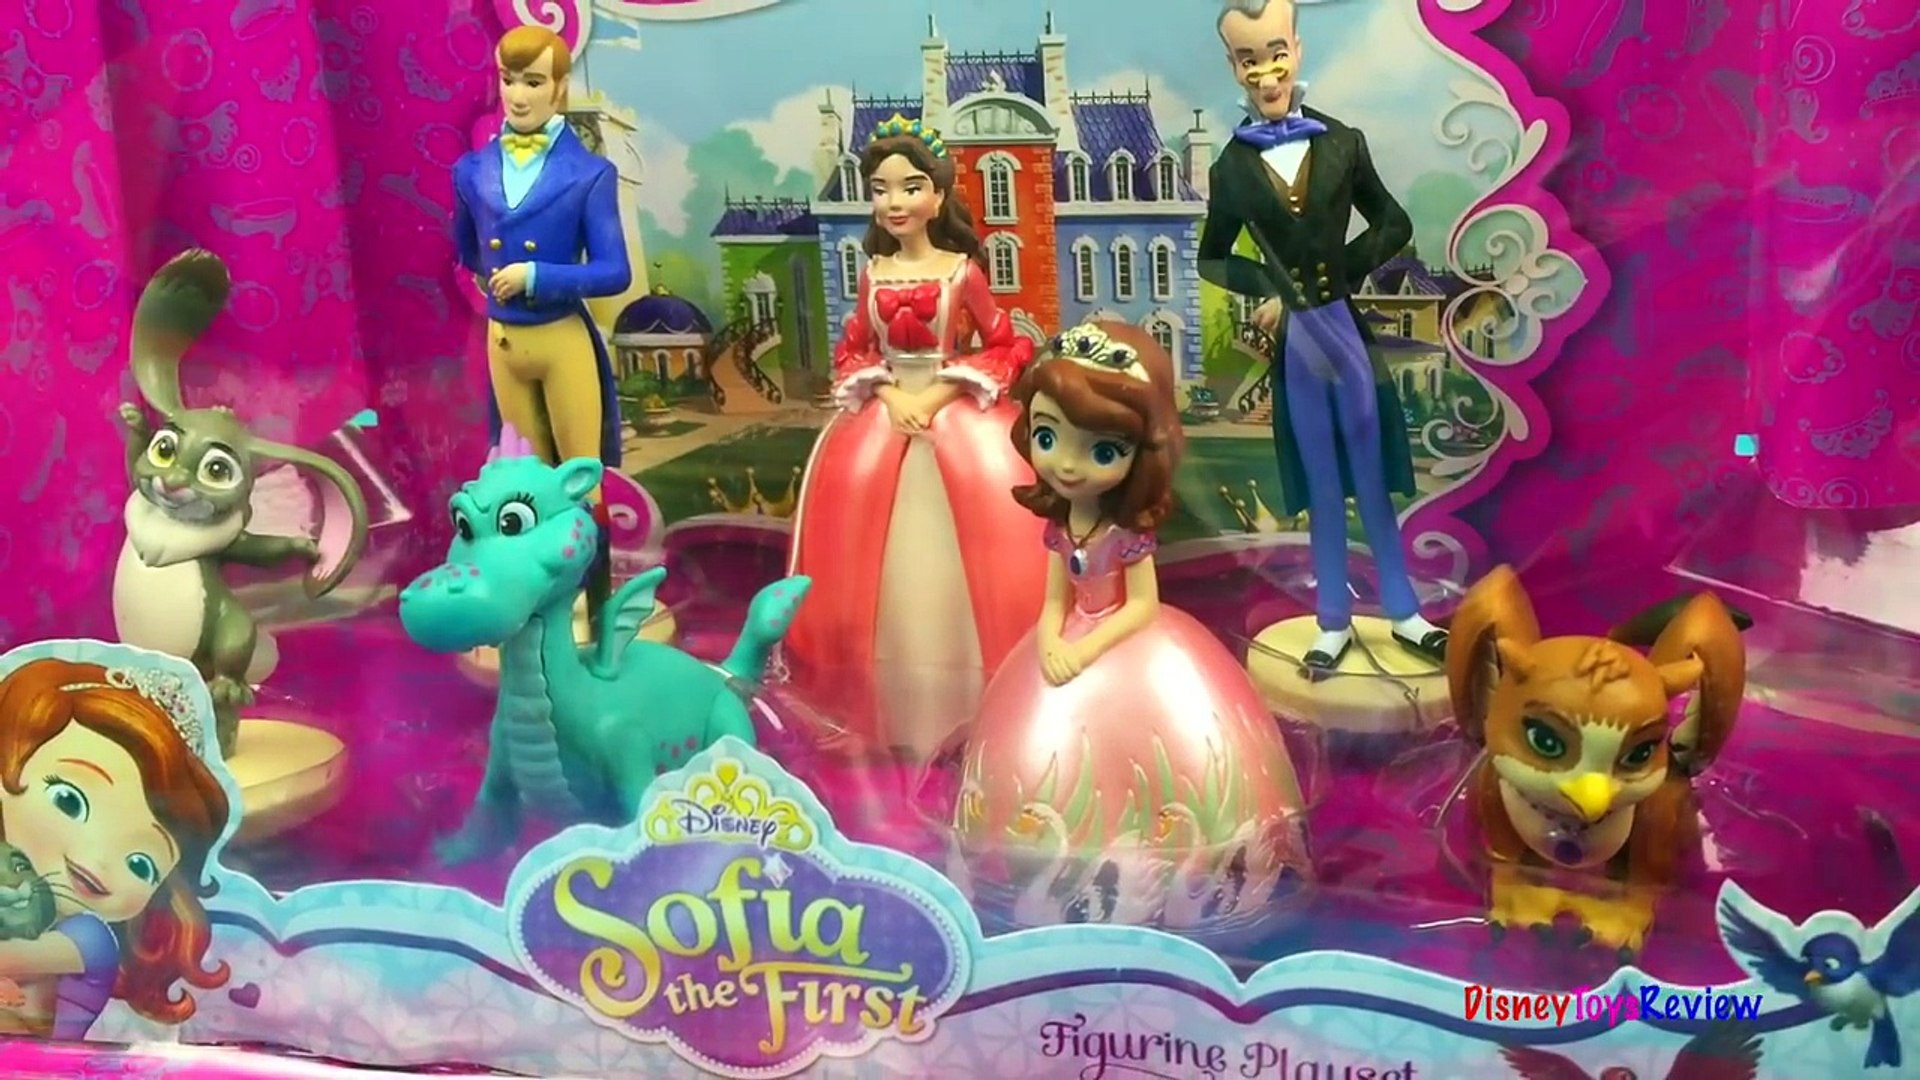 Disney Princess Sofia the First Figurine Set Queen Miranda Baileywick Clover Crackle and Baby